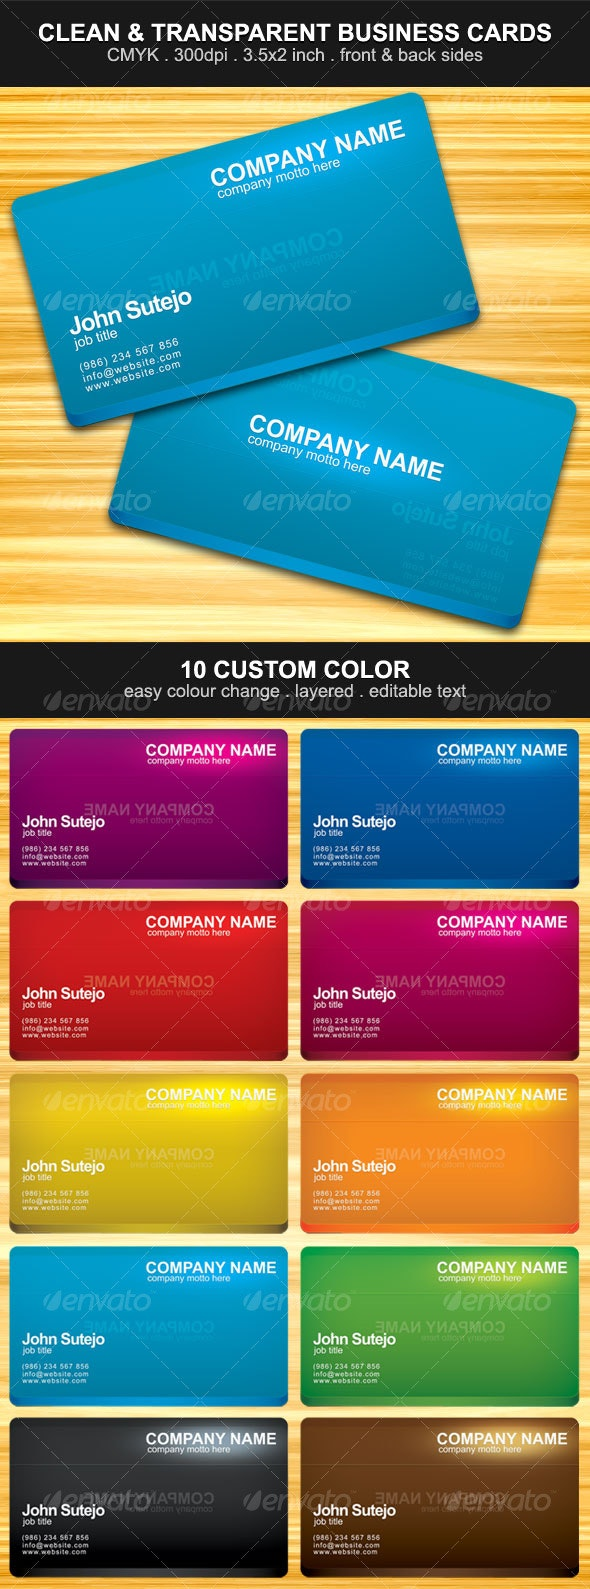 Clean & Transparent Effect Business Card - Business Cards Print Templates